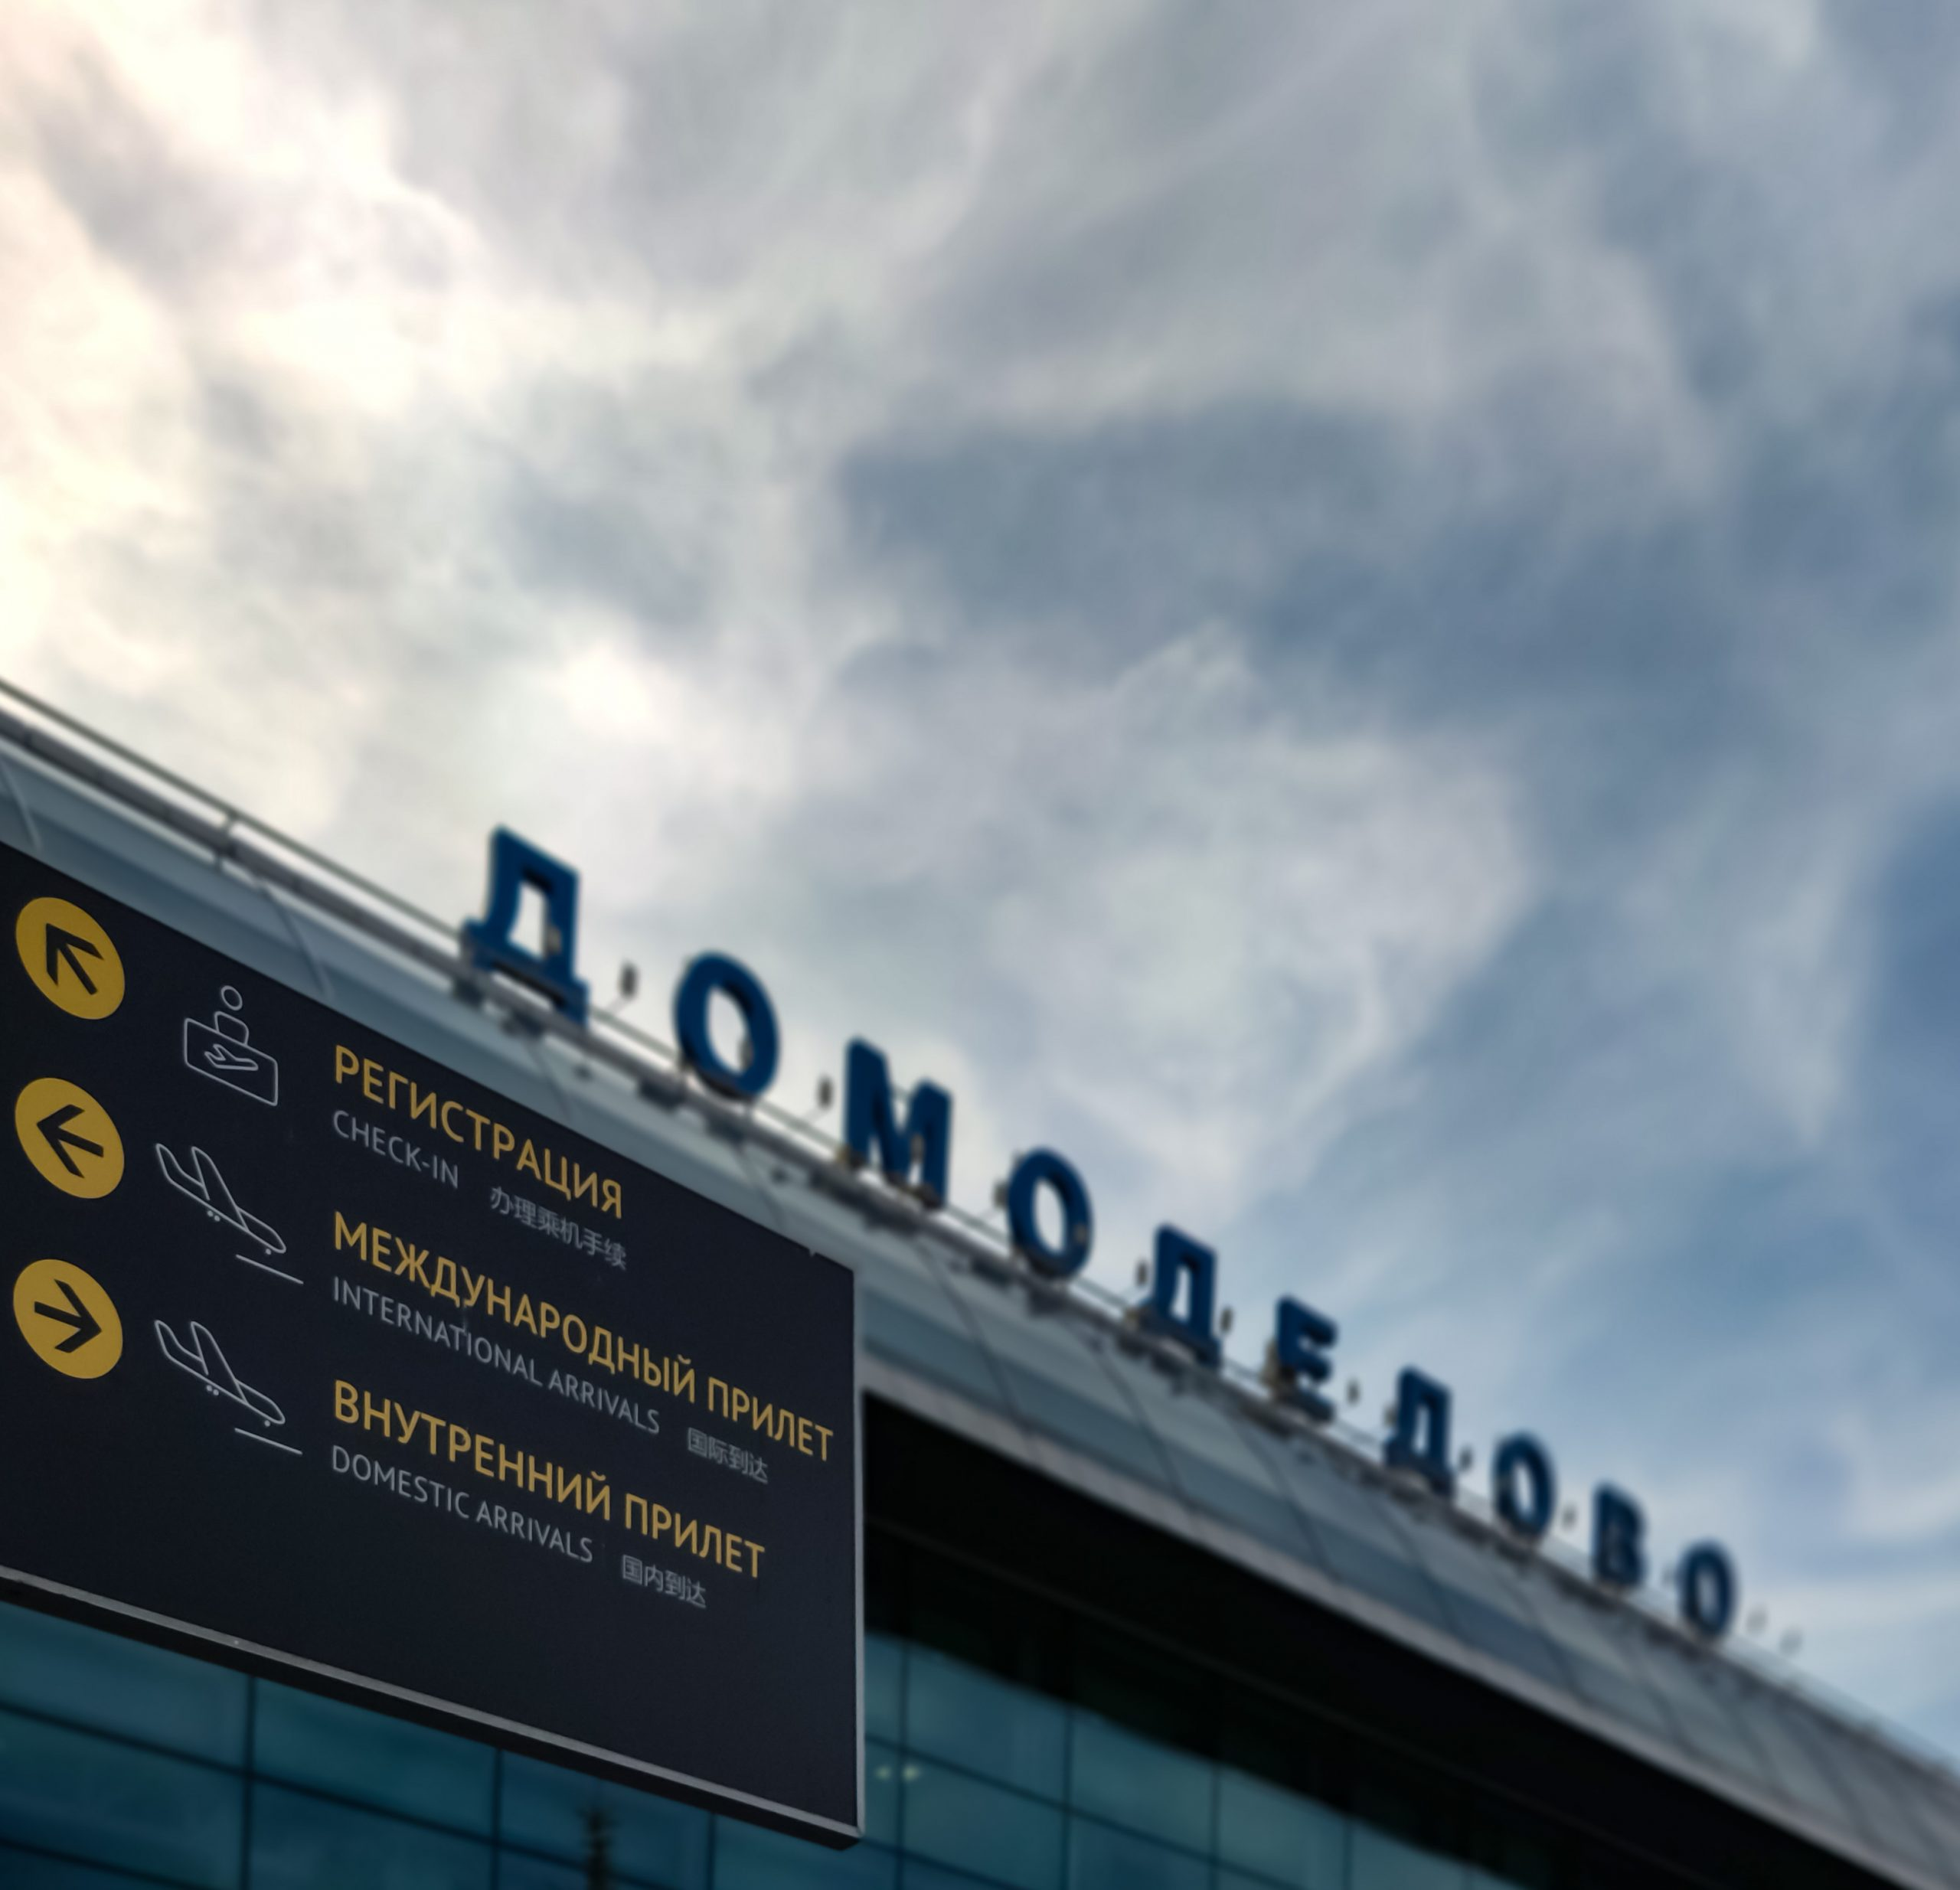 Moscow Domodedovo Airport: 1.5 million passengers served in October